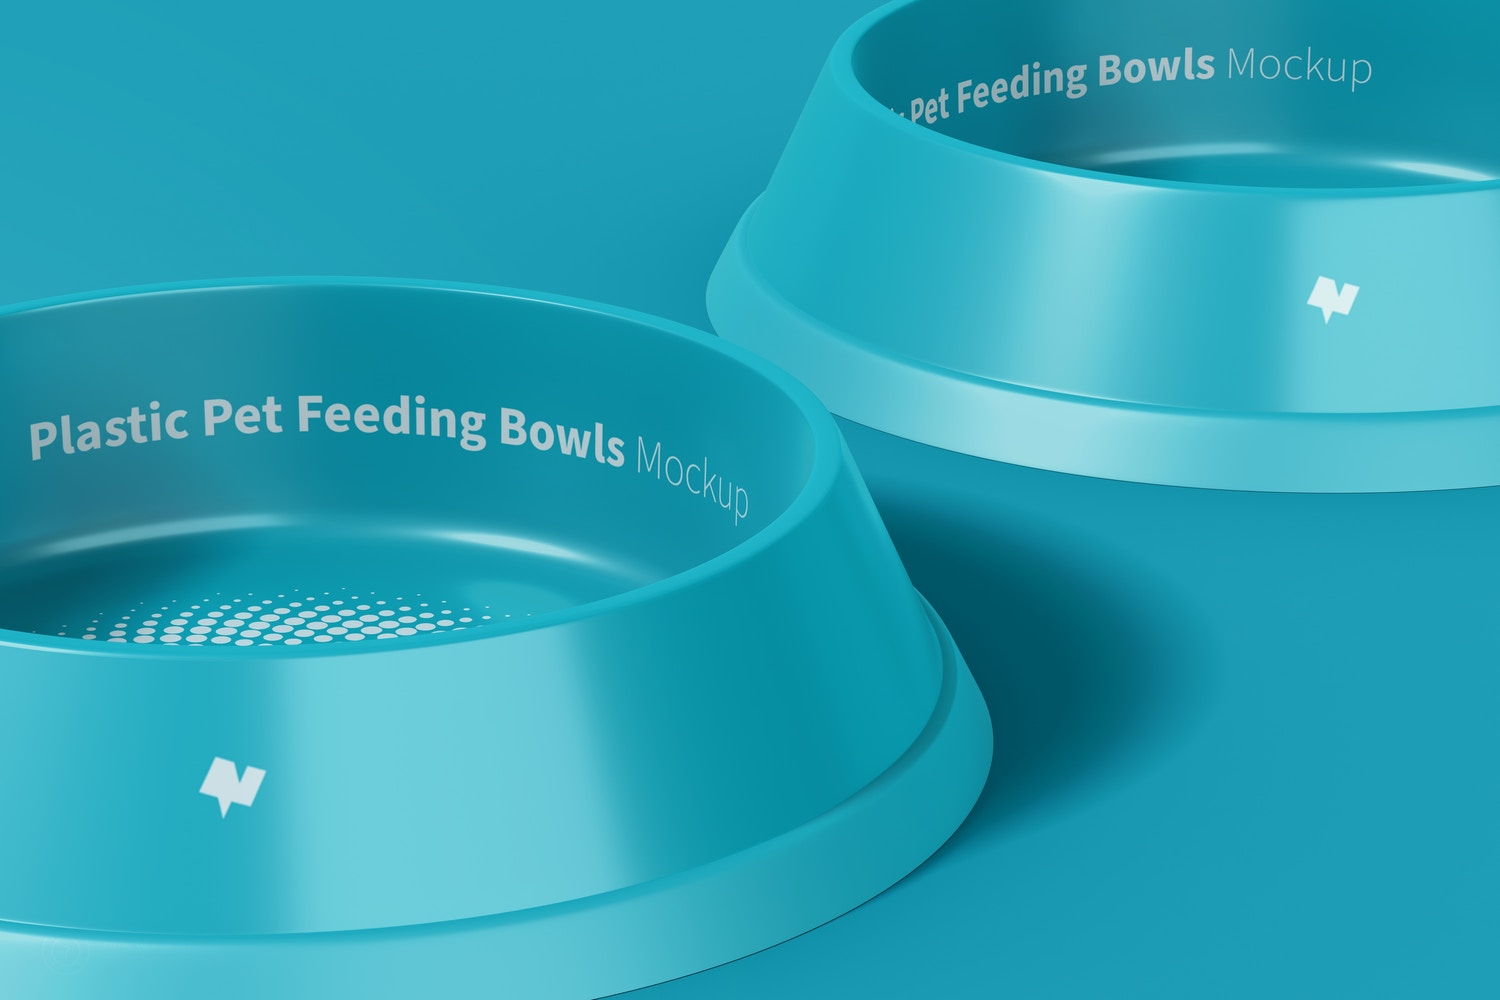 You can change the color of the background and the bowls.